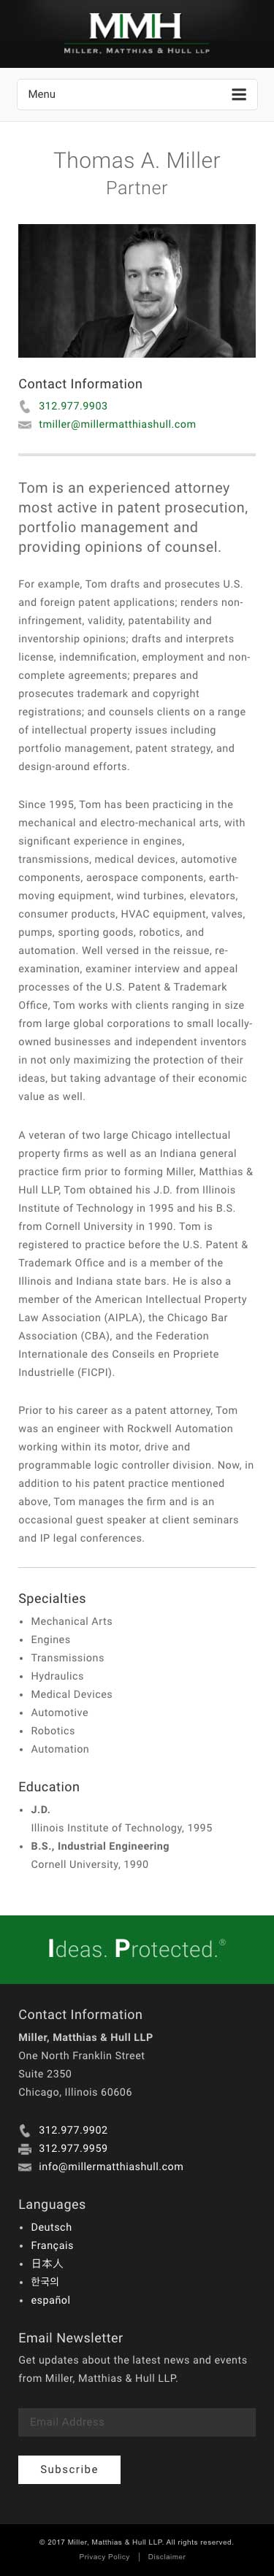 Miller Matthias & Hull - Profile Page - iPhone View